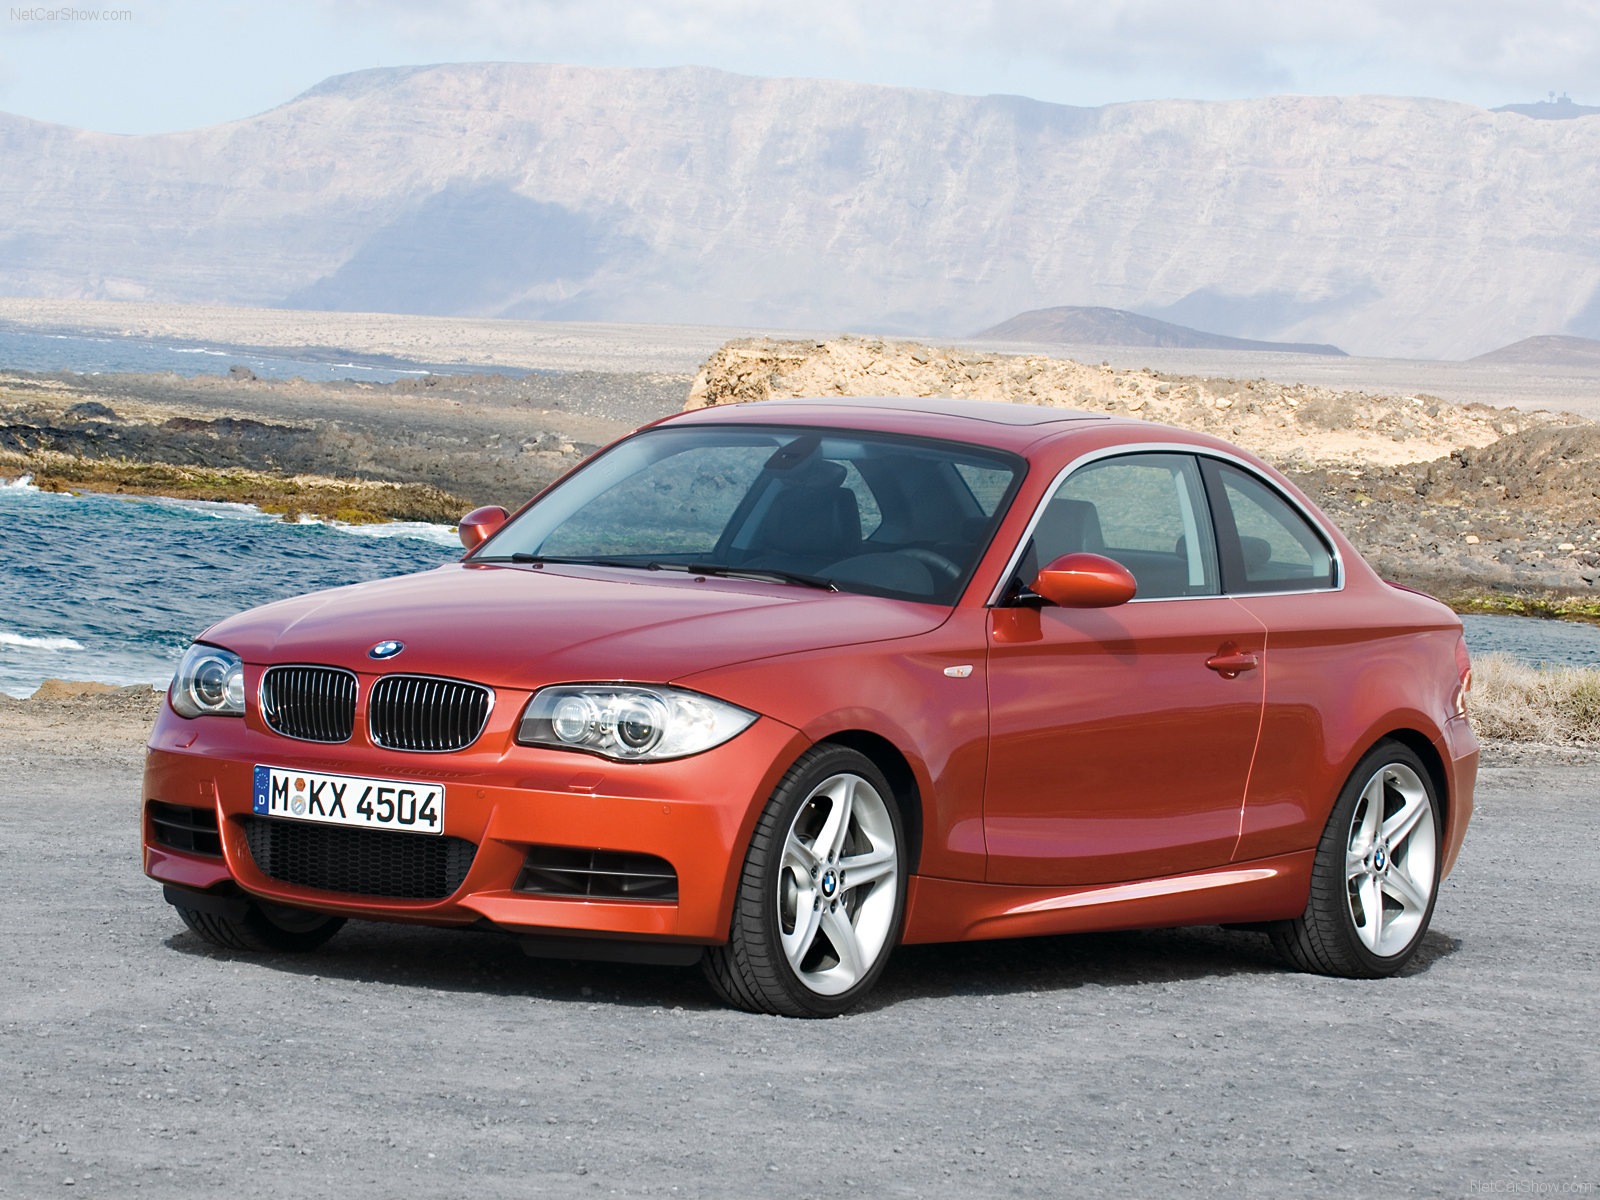 sacramento auto star bmw sale ca for details inventory king at in series